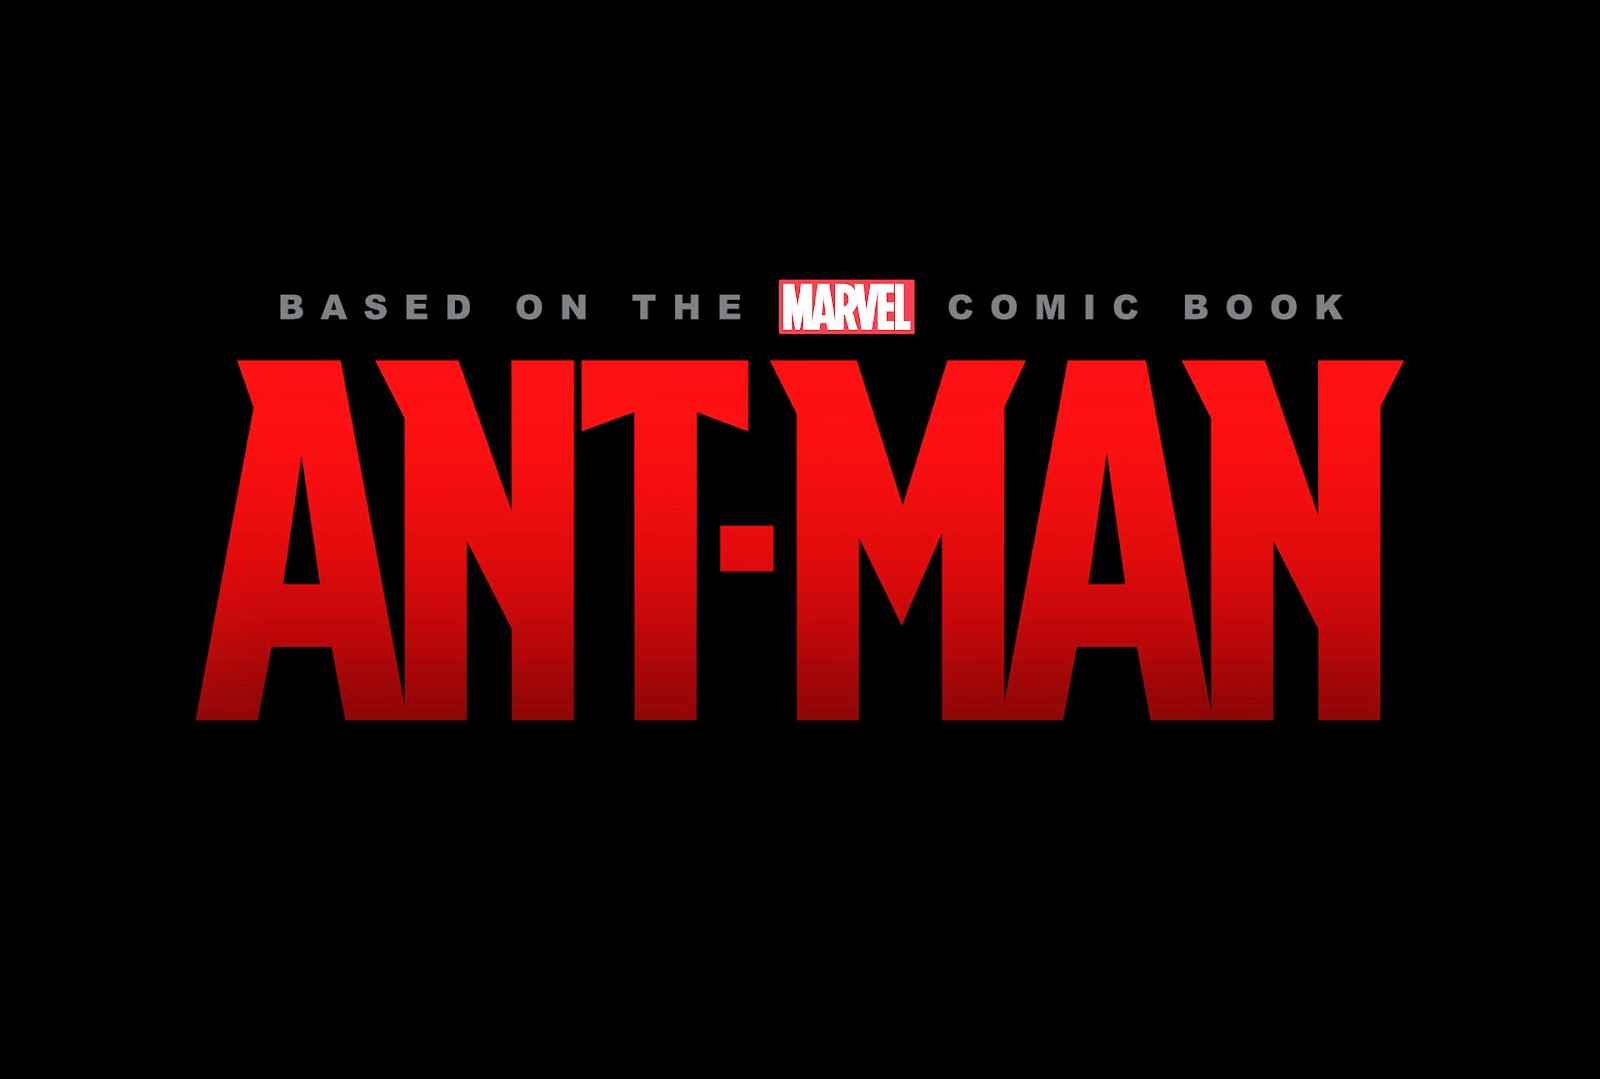 Michael Douglas as Hank Pym in Ant-Man Wallpaper